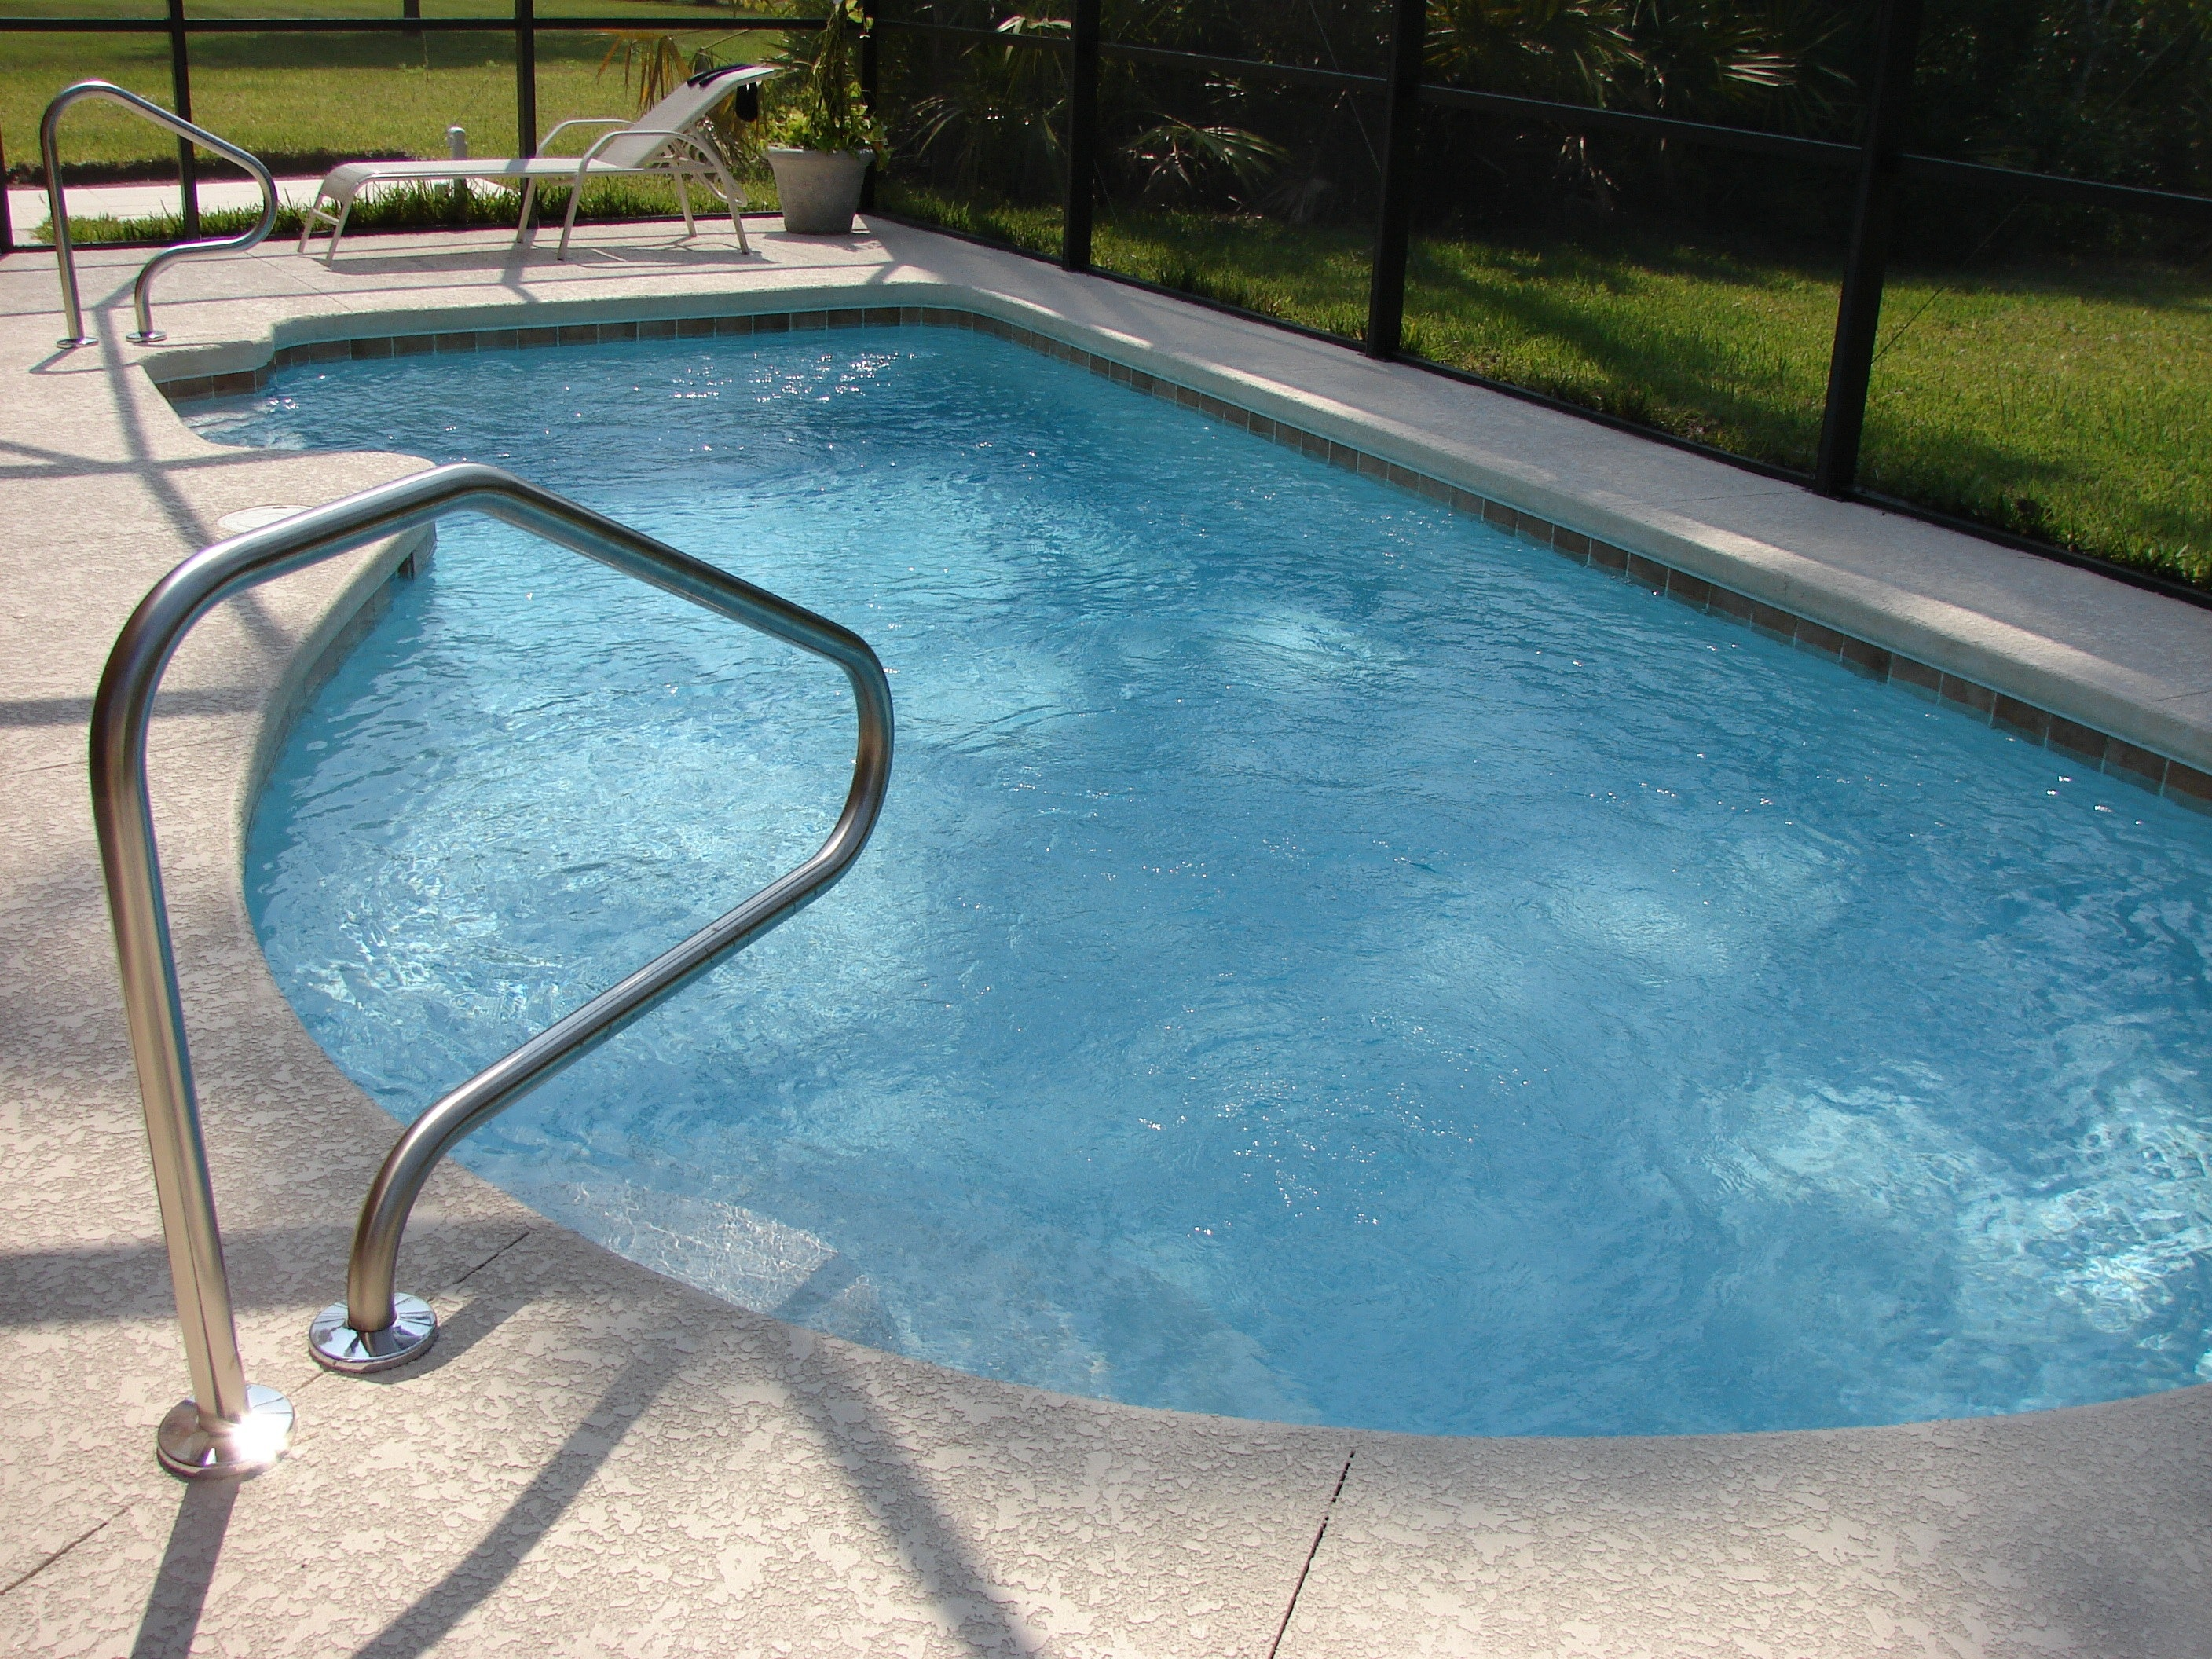 So You Want To Build A Swimming Pool - Aqua Spas and Pools